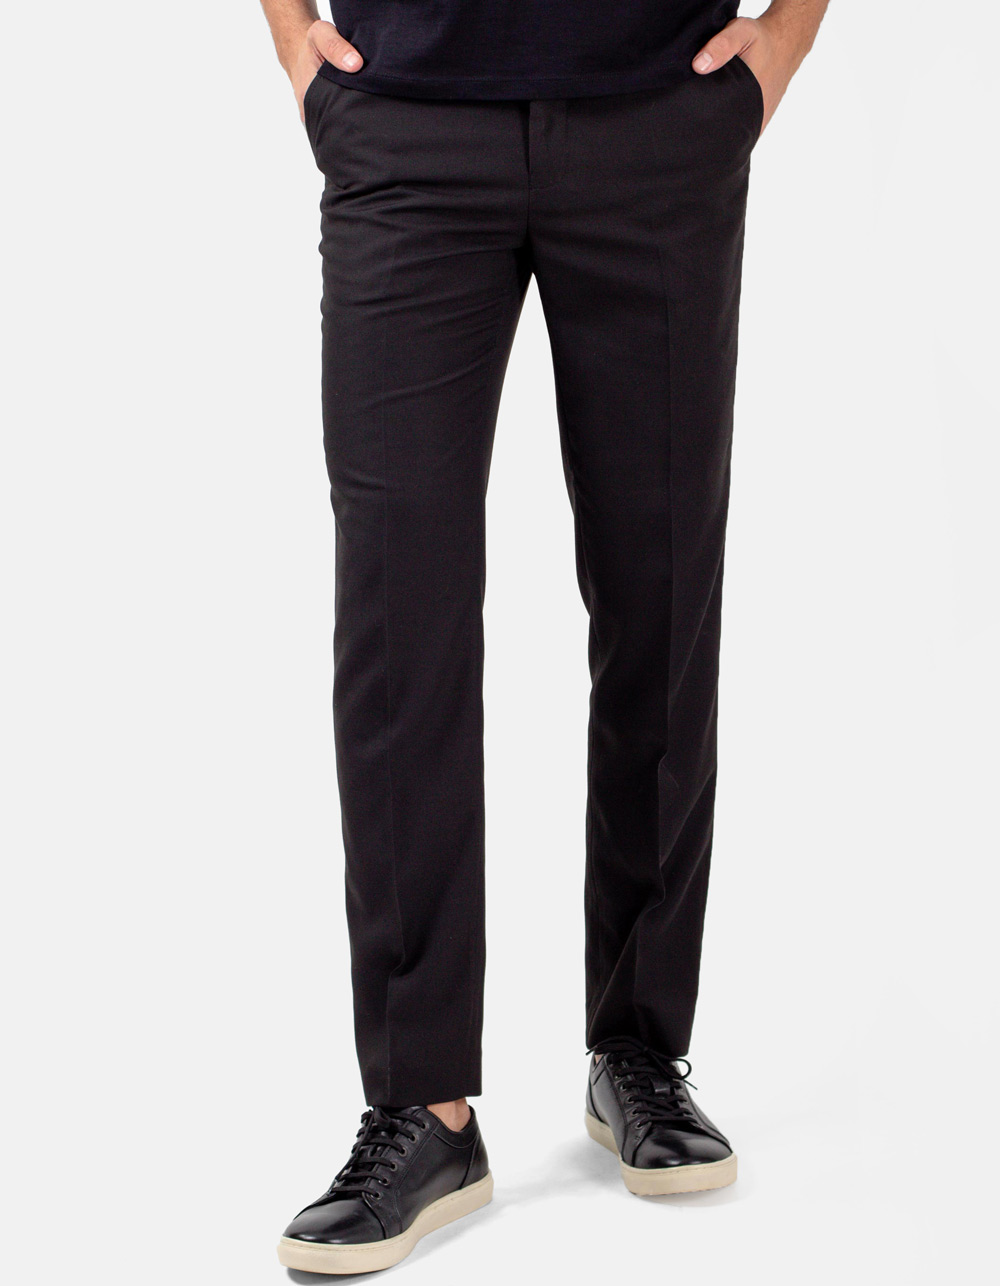 Black plain trousers